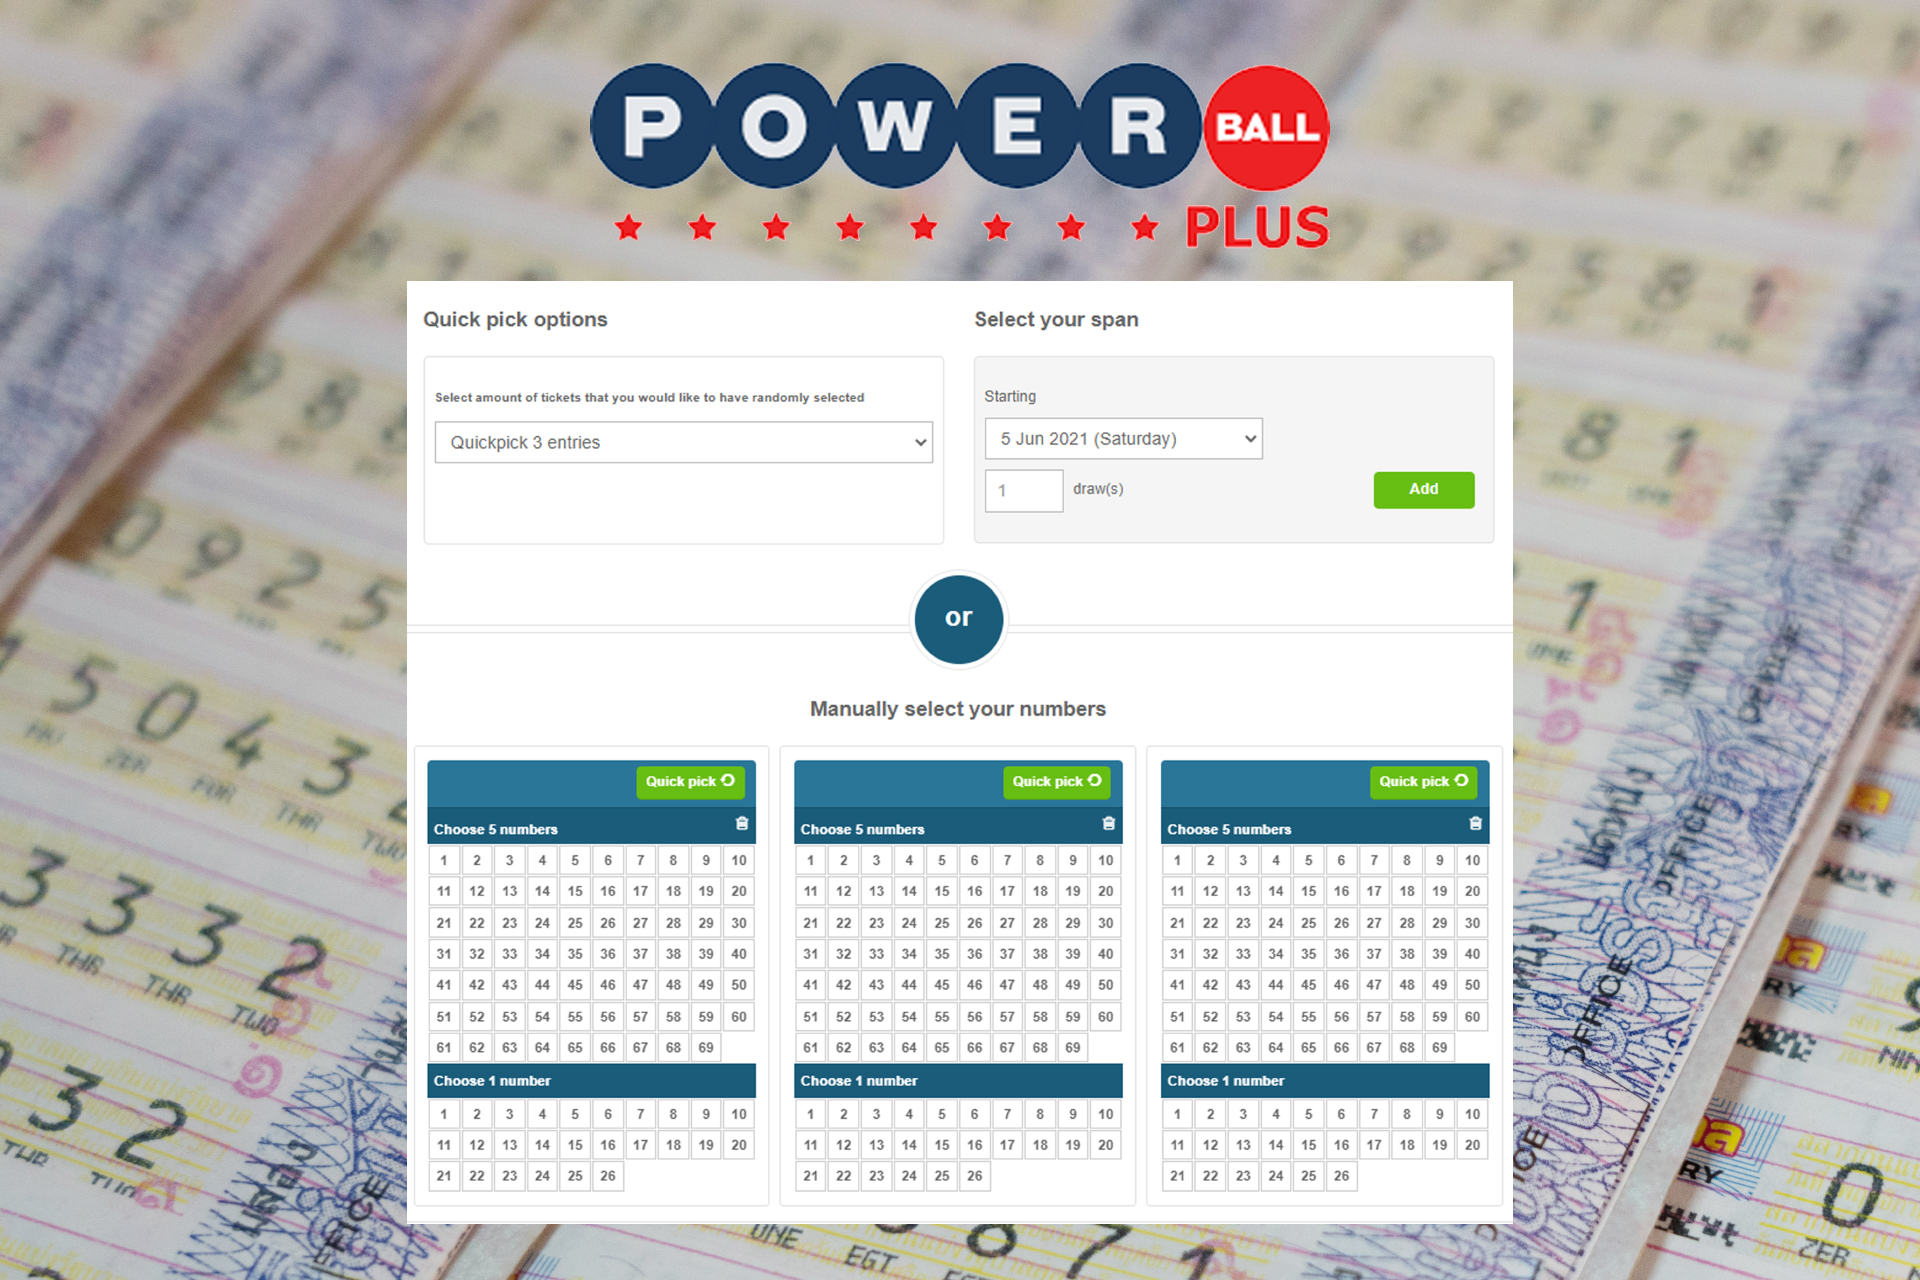 Powerball Plus awards are much bigger than Powerball's.